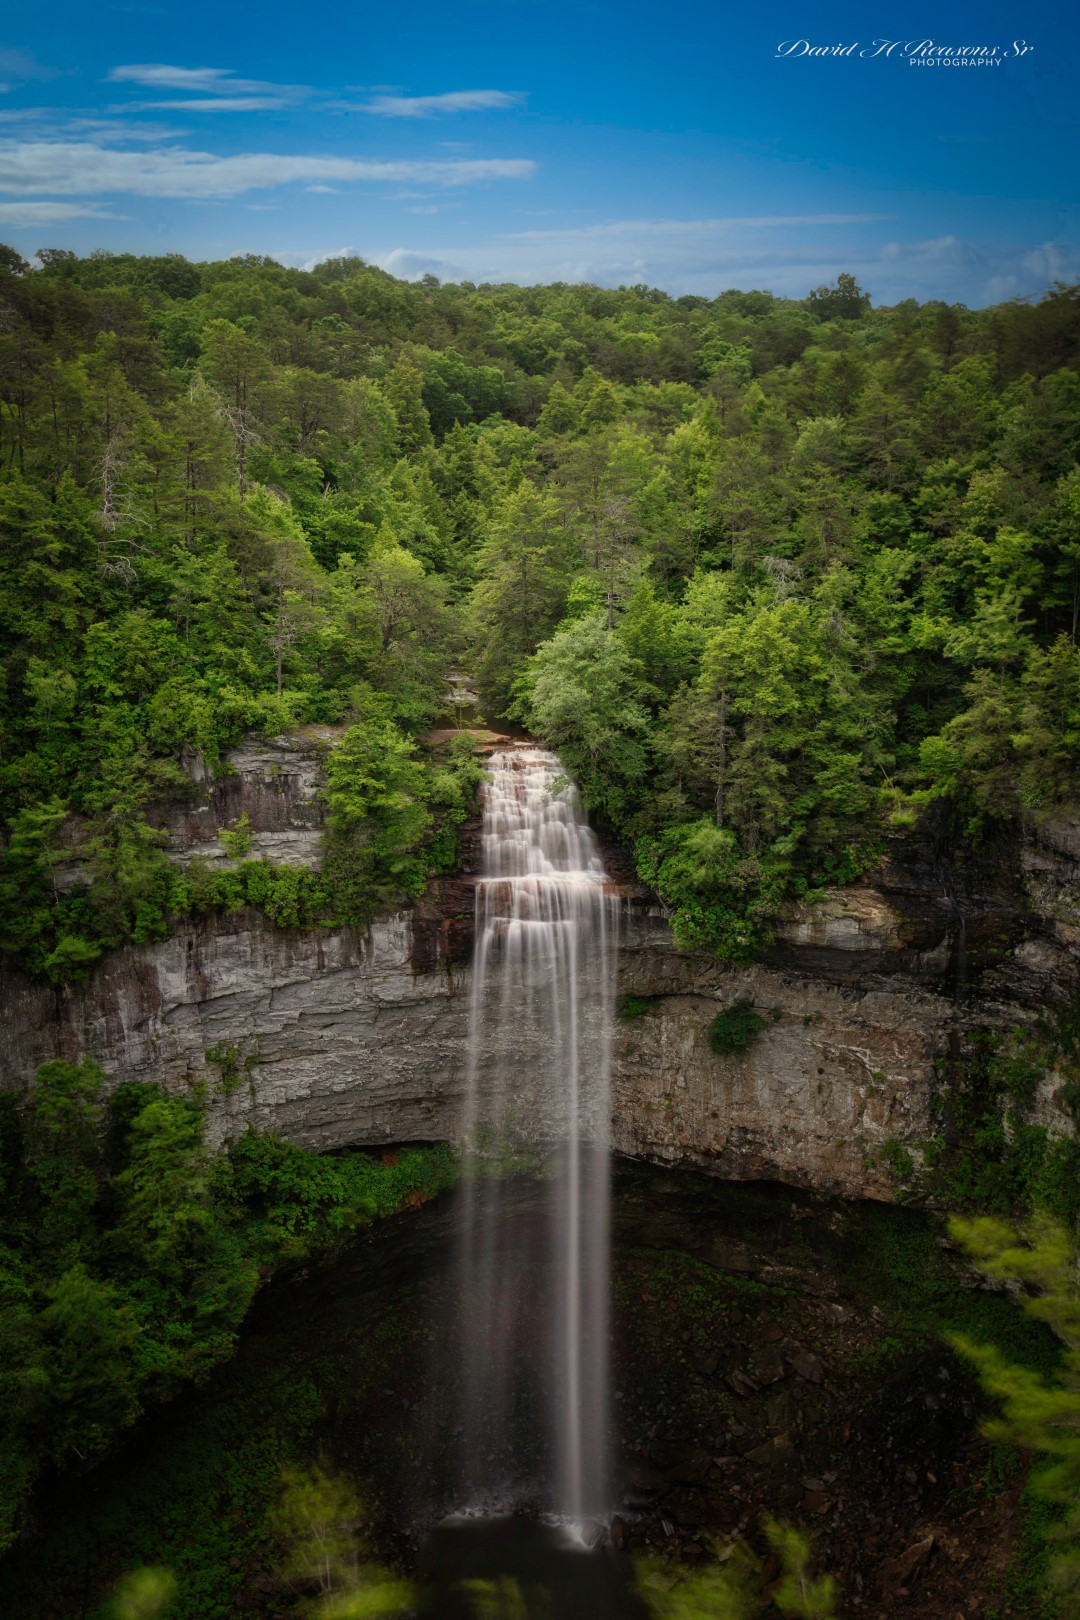 Tallest waterfalls east of the Mississippi River at 256 ft. high.